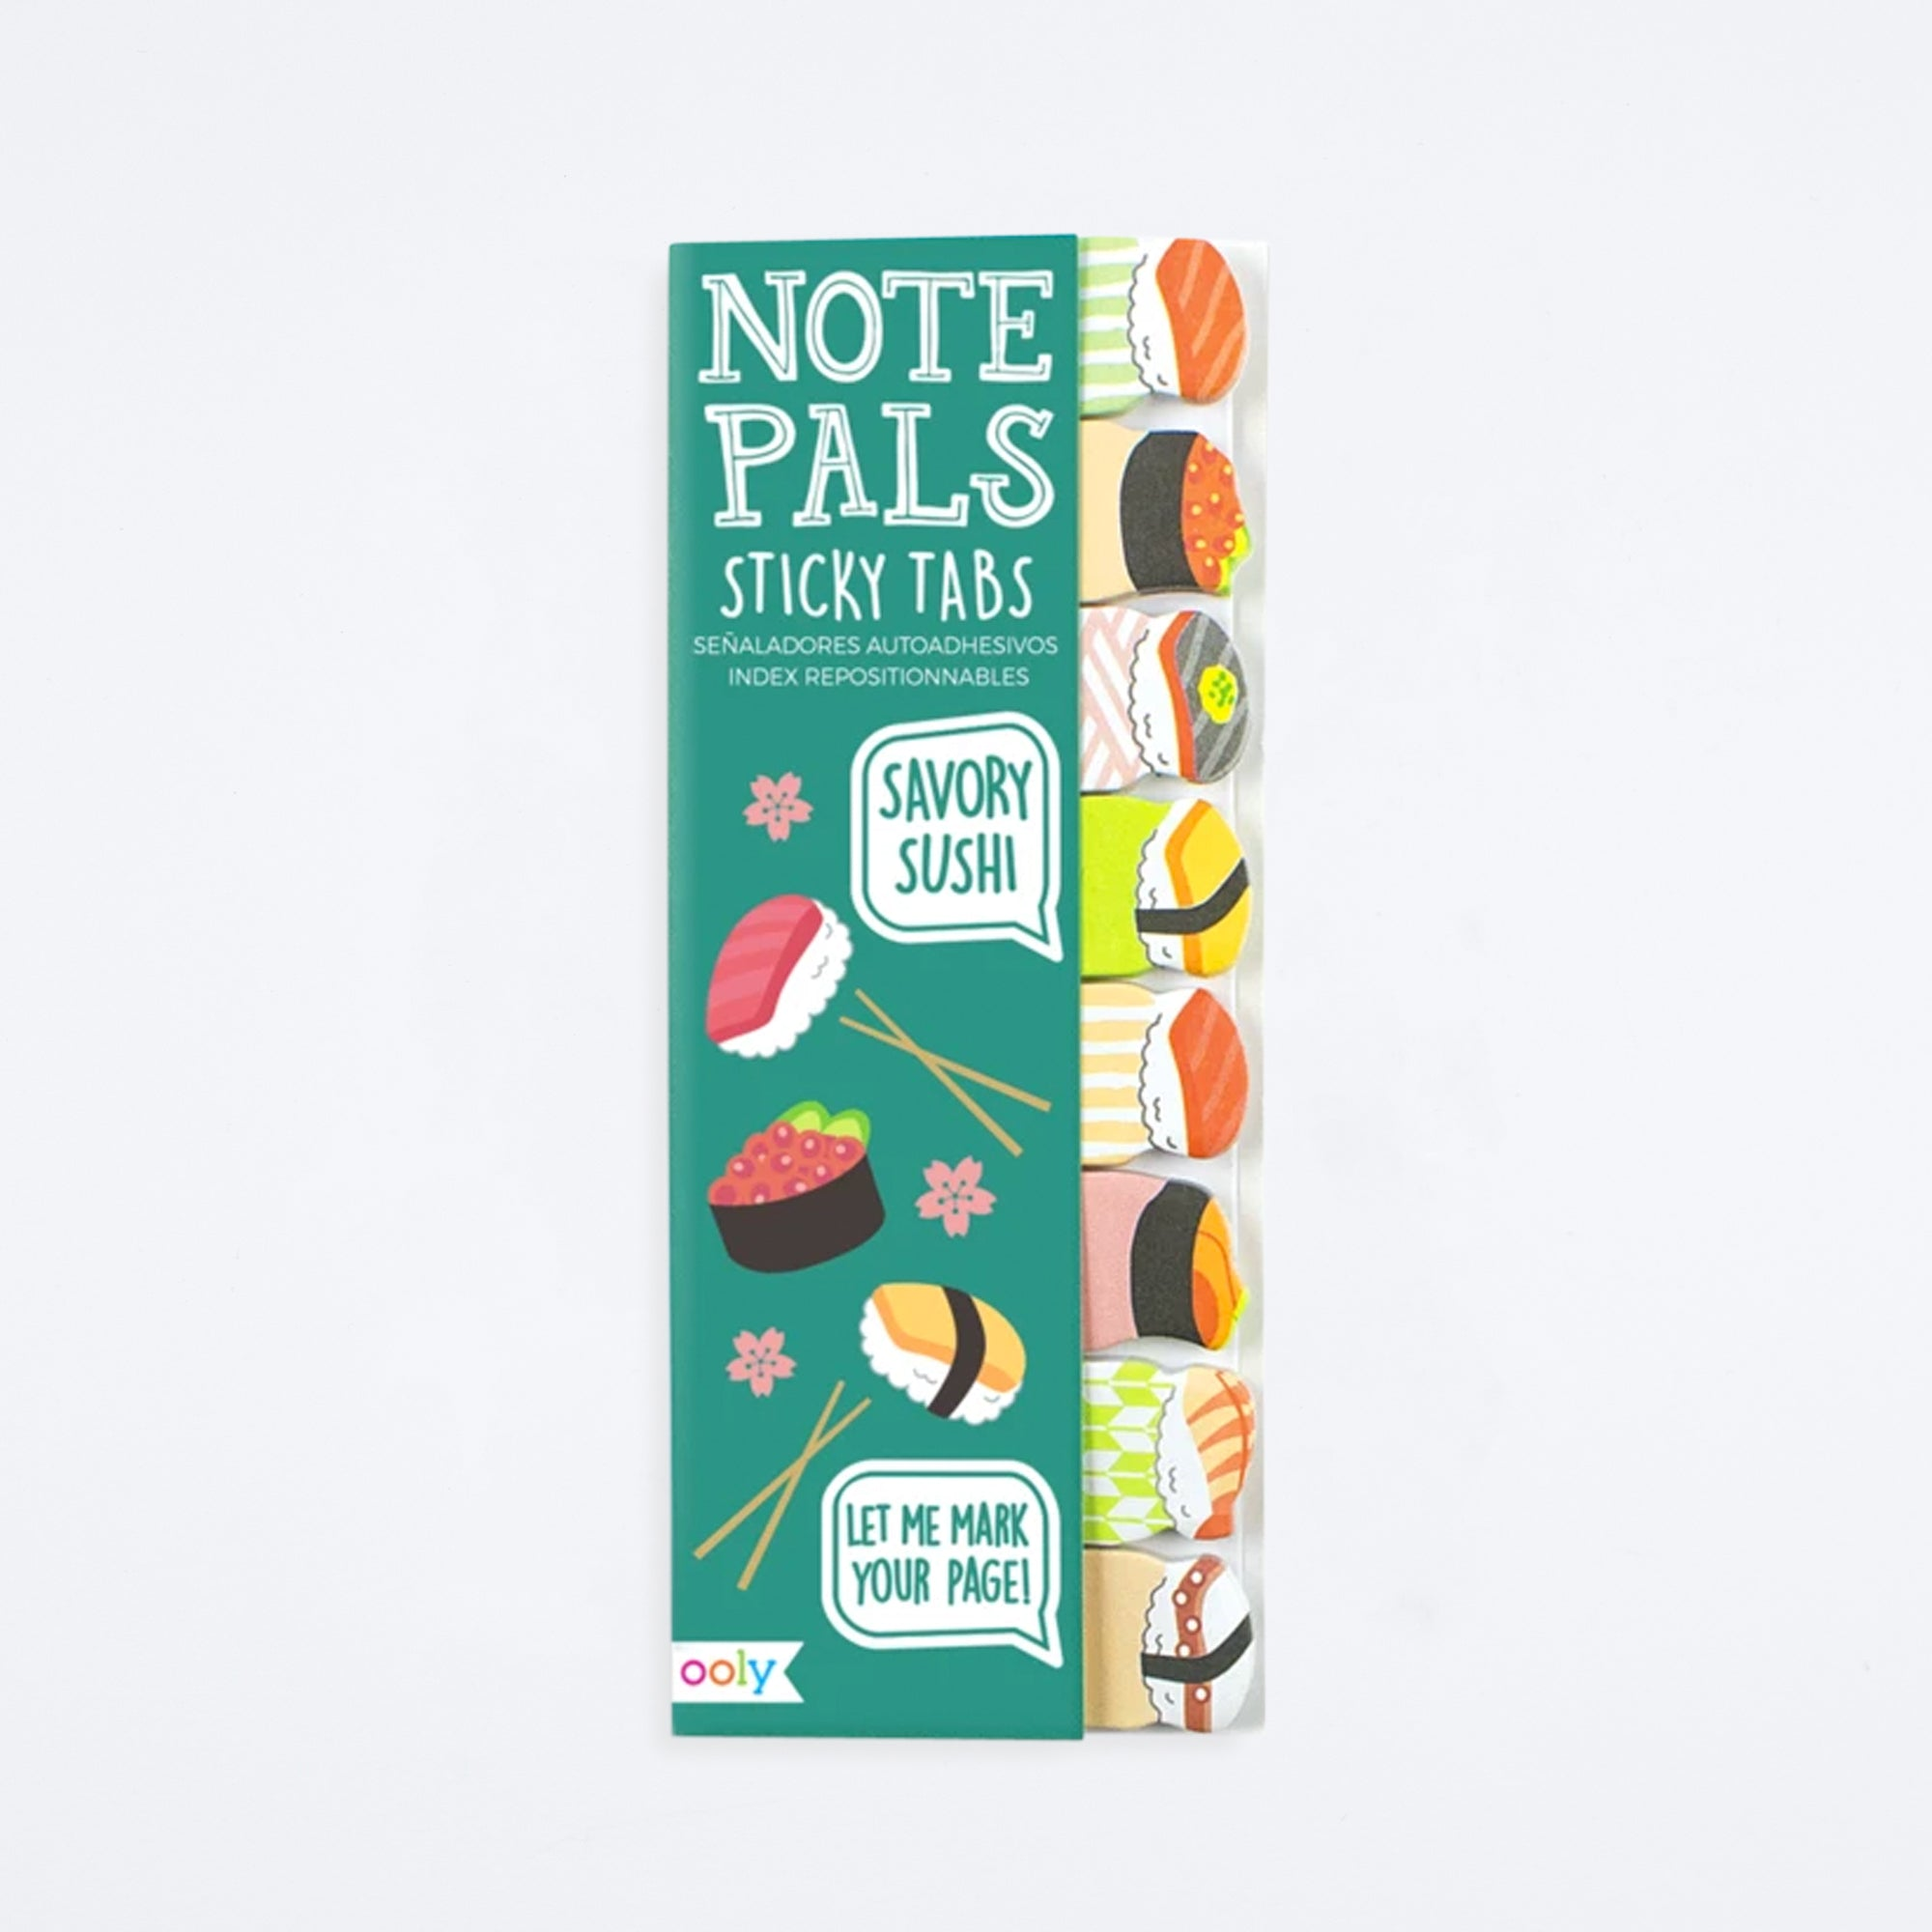 Savory Sushi Note Pals Sticky Notes